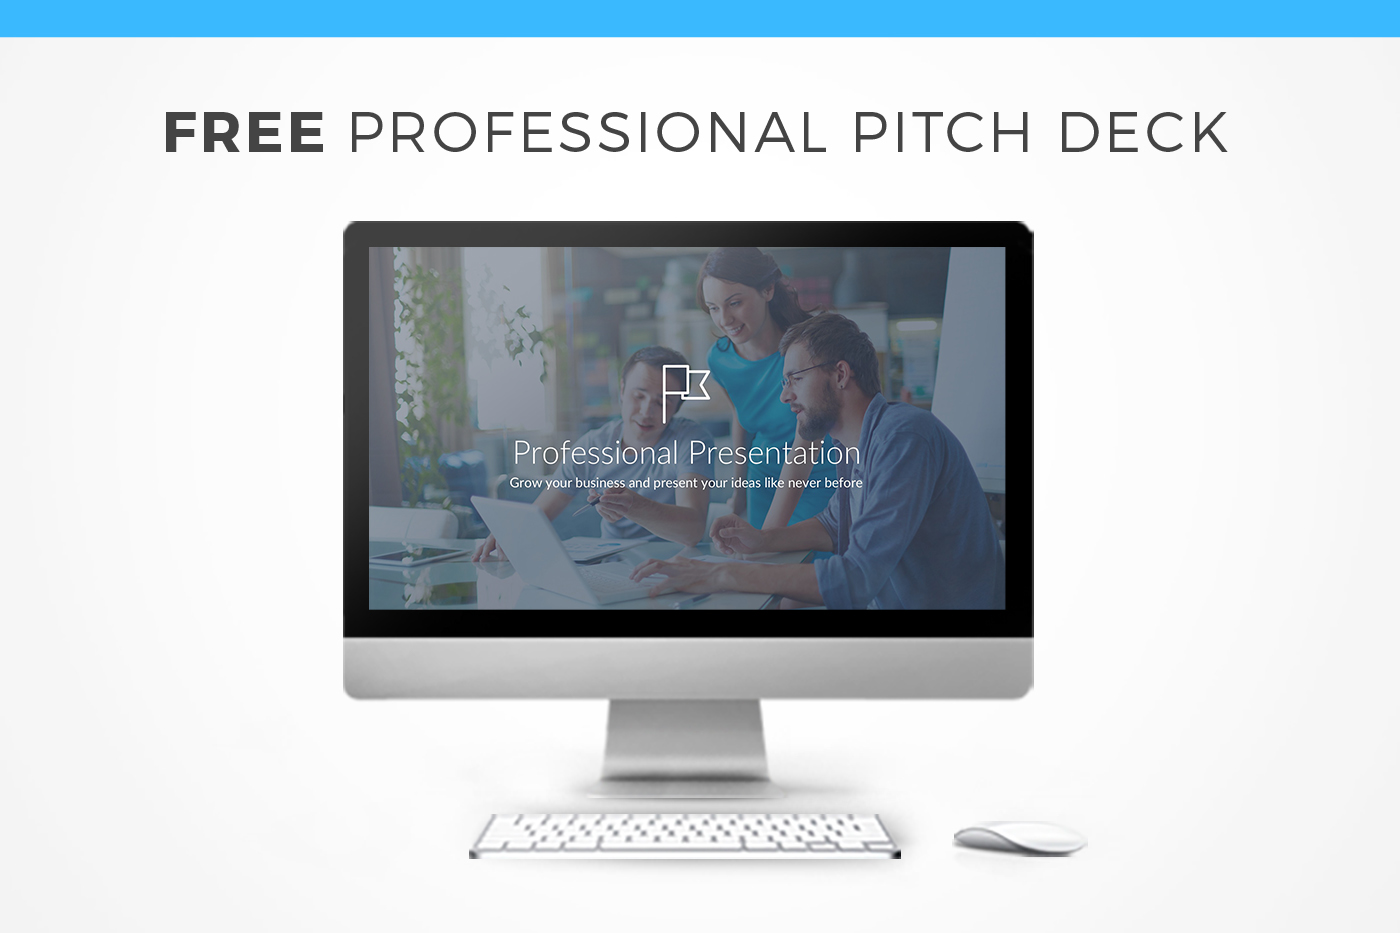 Professional Pitch Deck Free Keynote Template on Behance